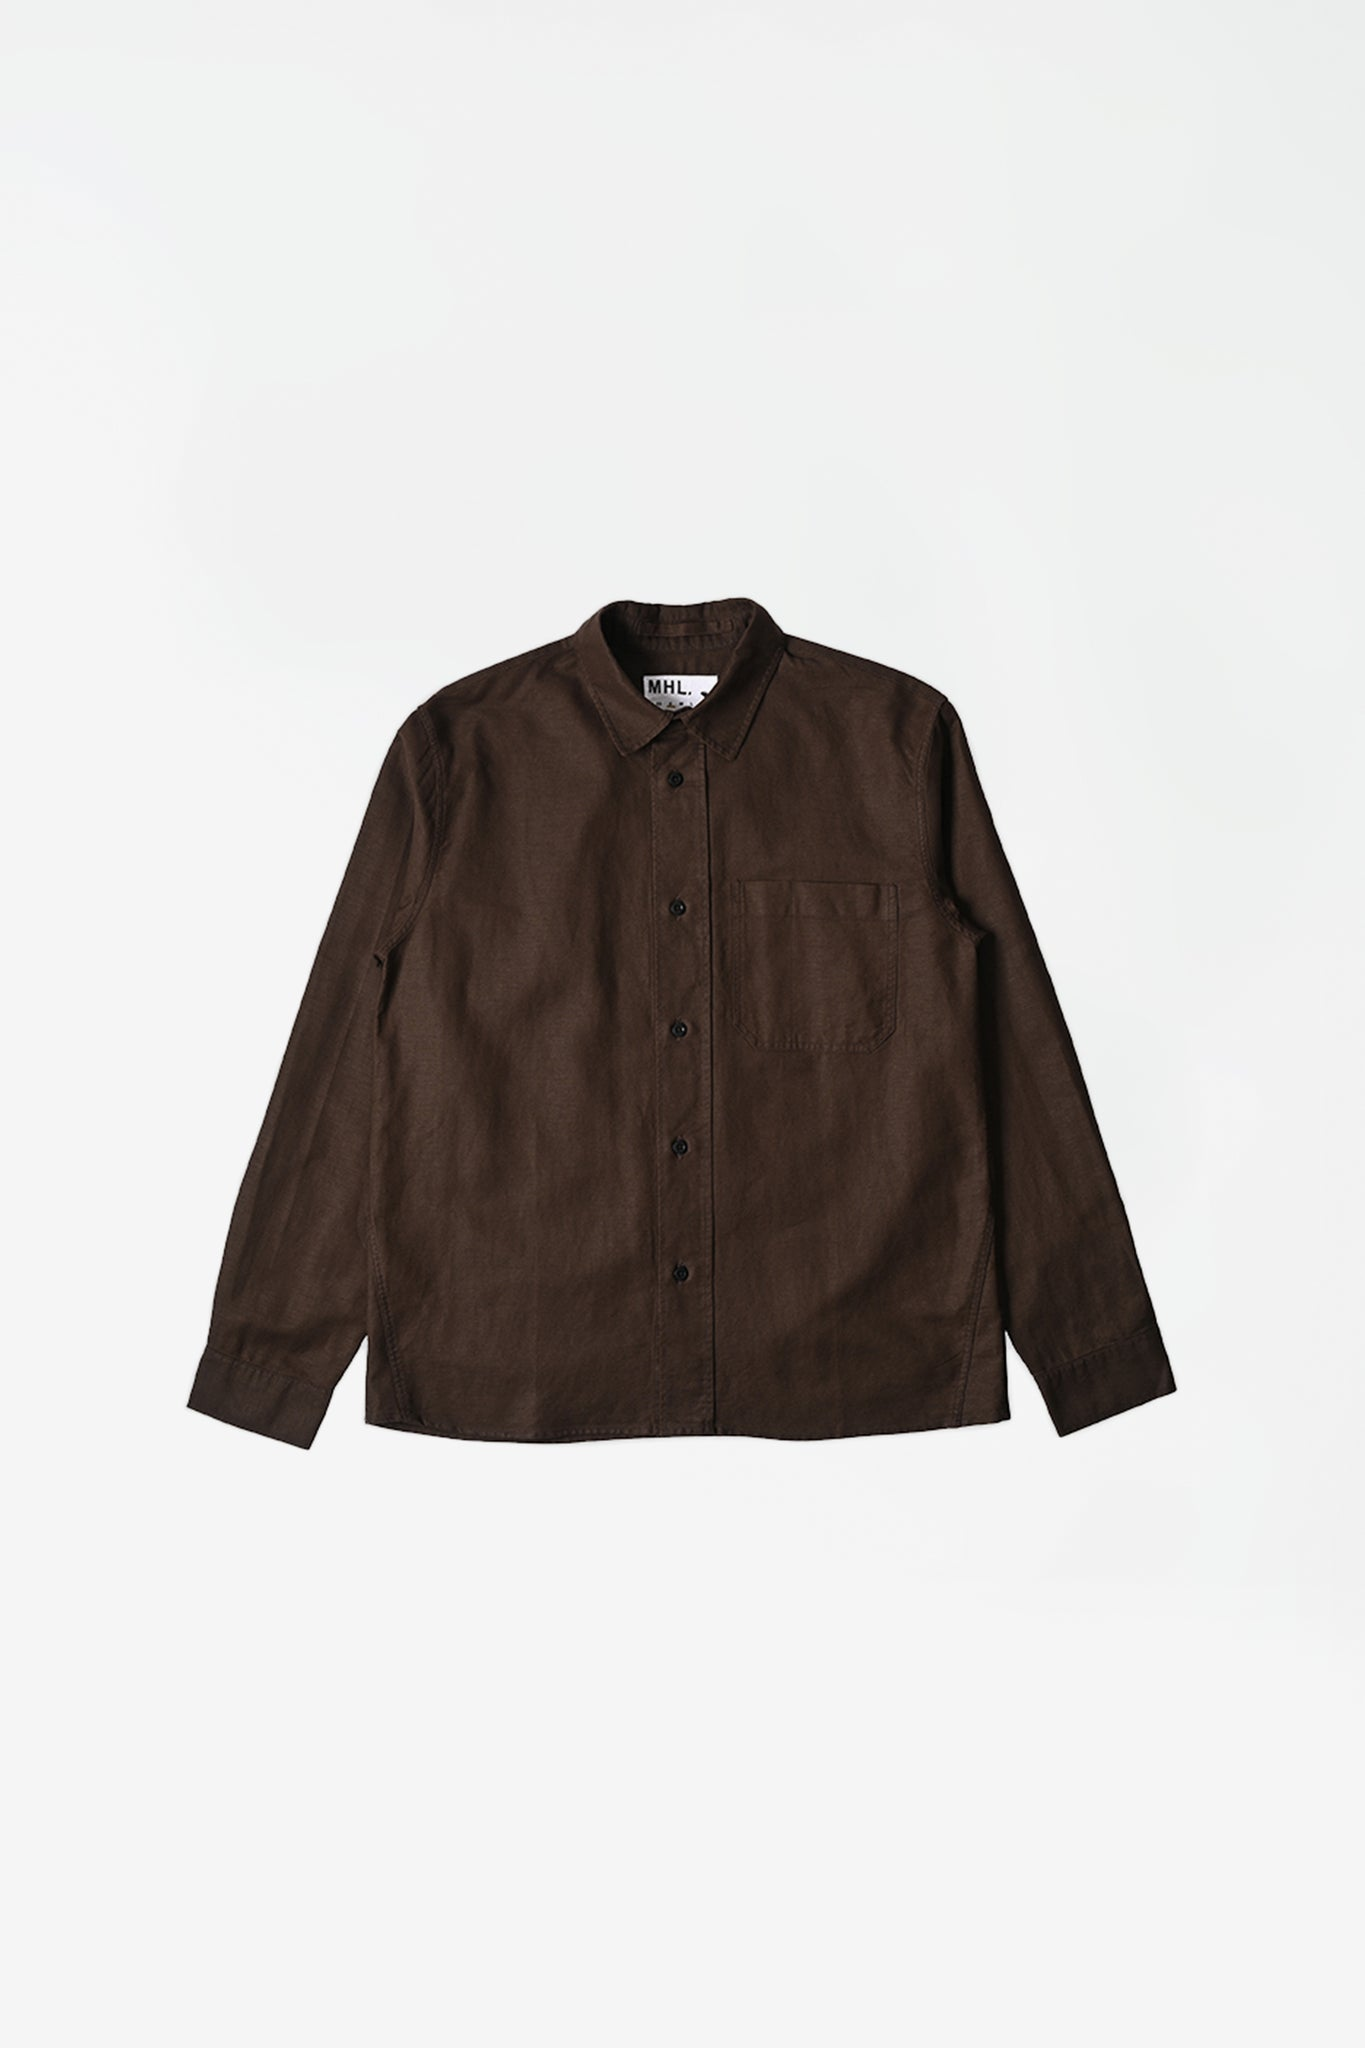 Painters shirt cotton/linen twill chestnut